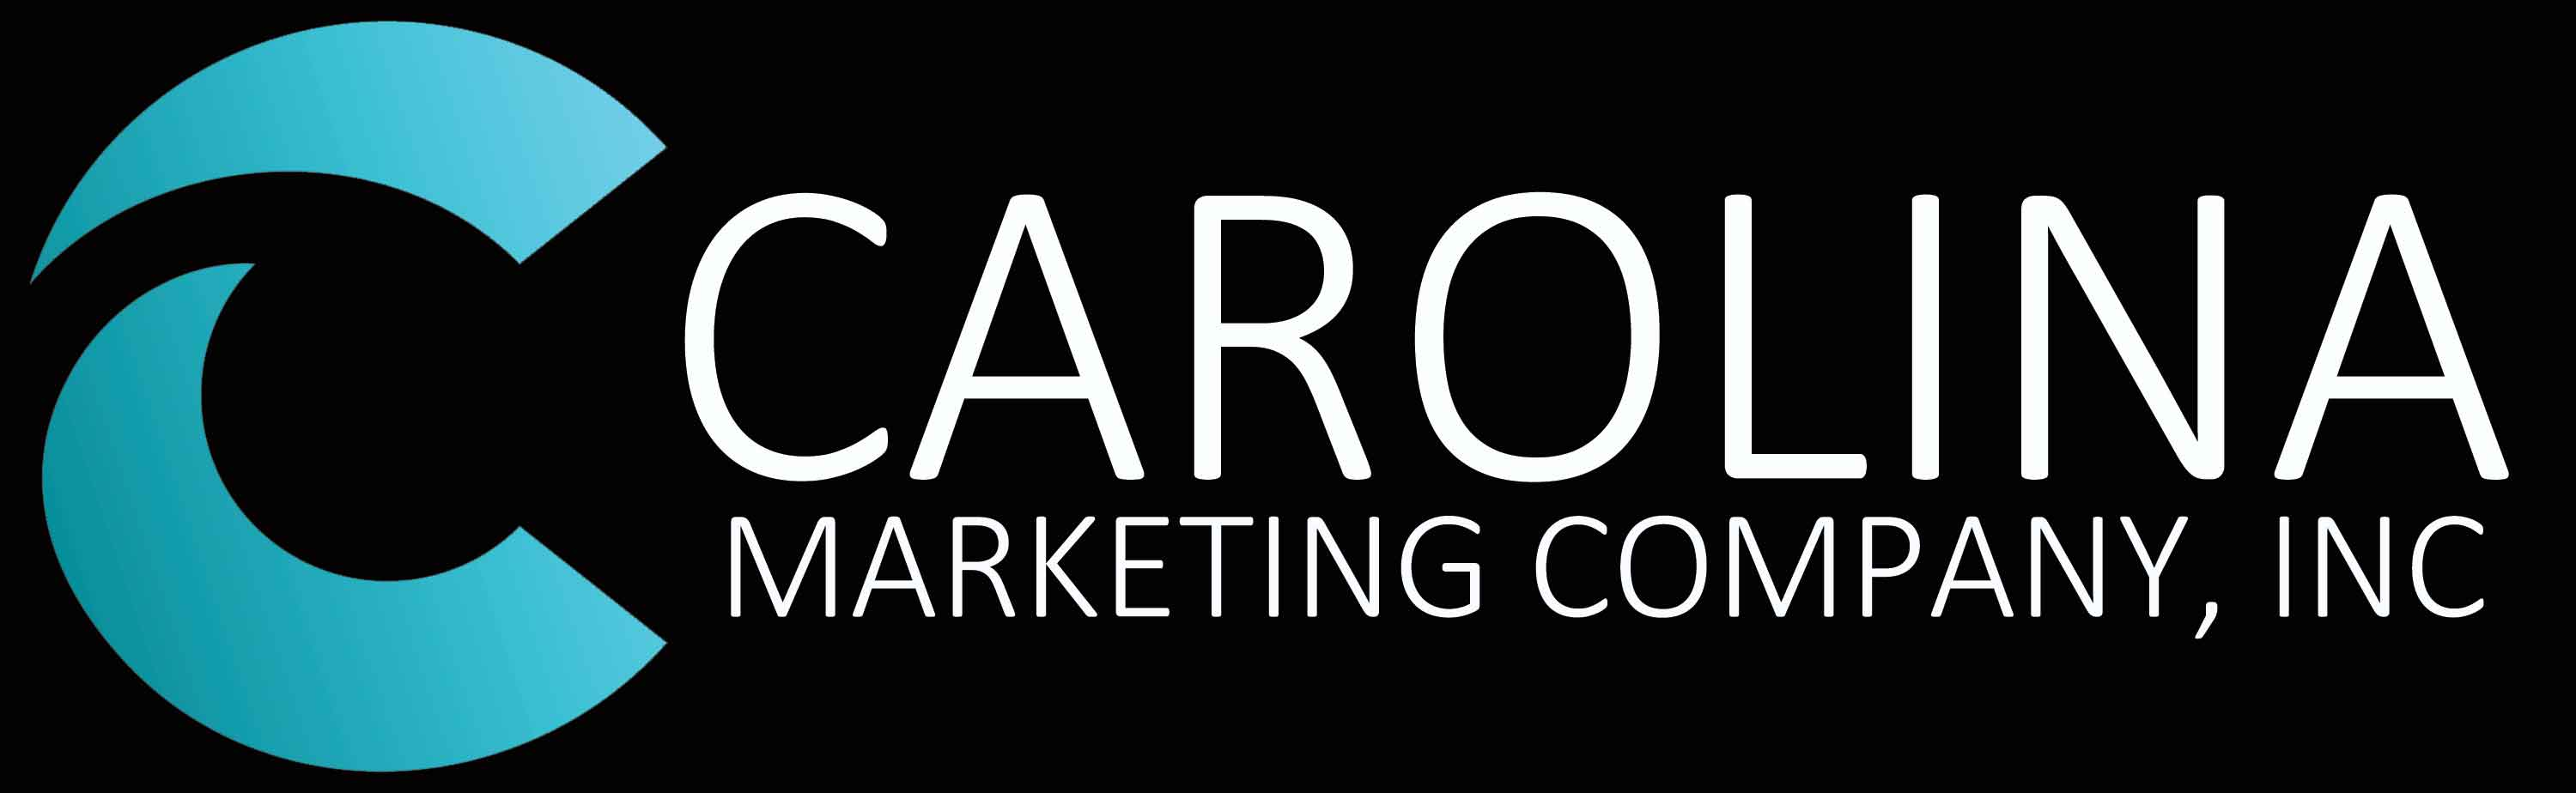 Carolina Marketing Company, Inc.